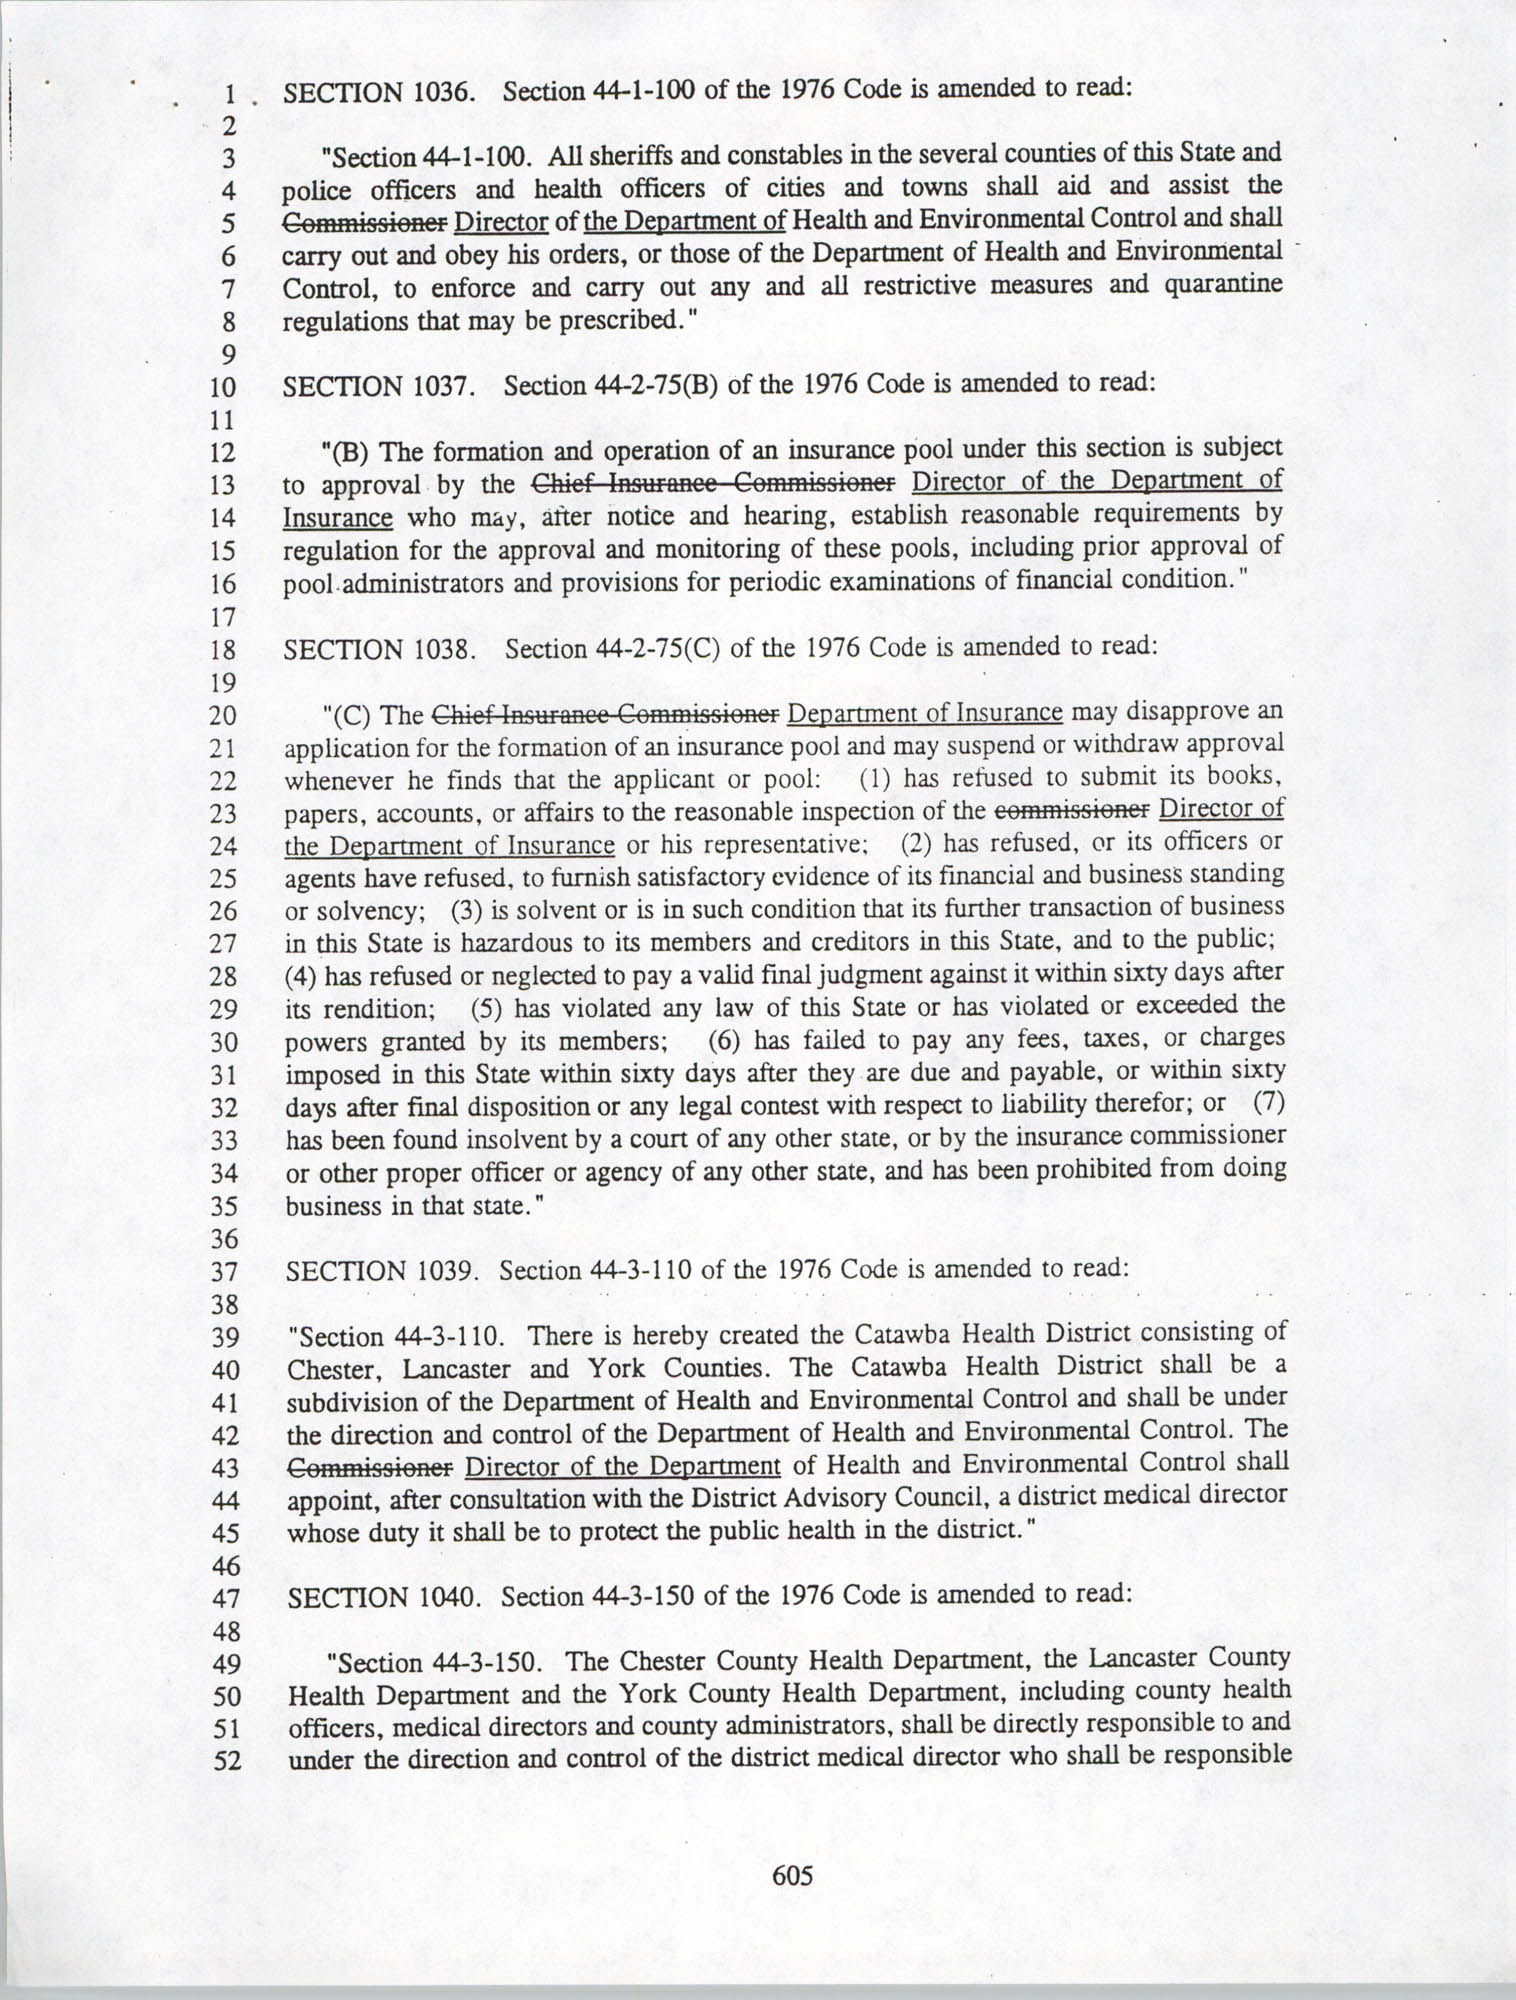 NAACP State Conference and Local Branch Community Development Resource Center Manual, Page 37